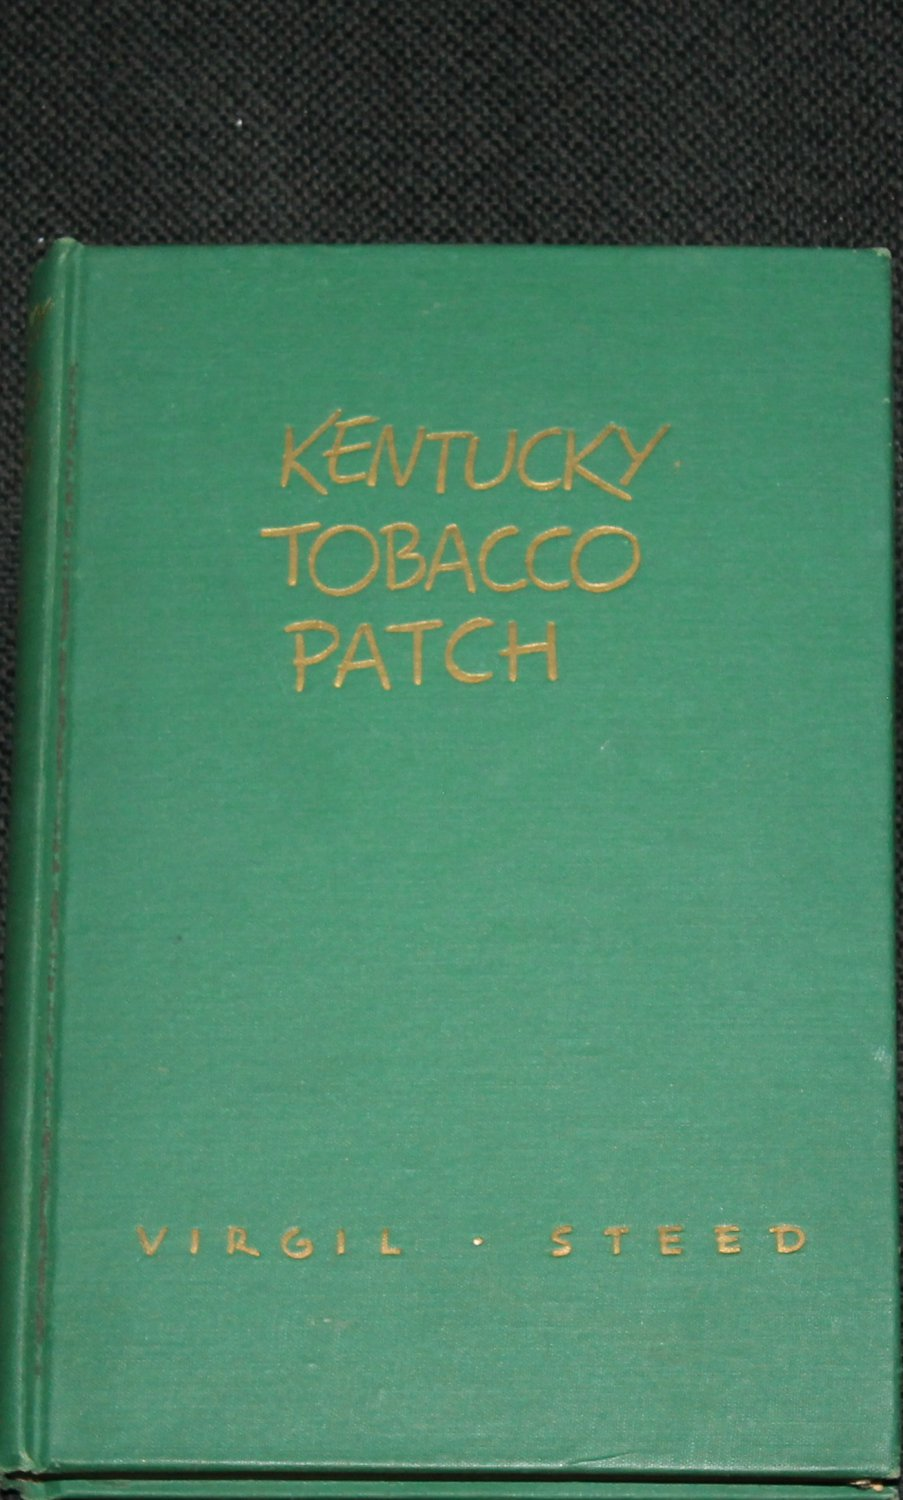 1947 Kentucky Tobacco Patch vintage book by Virgil Steed hardcover